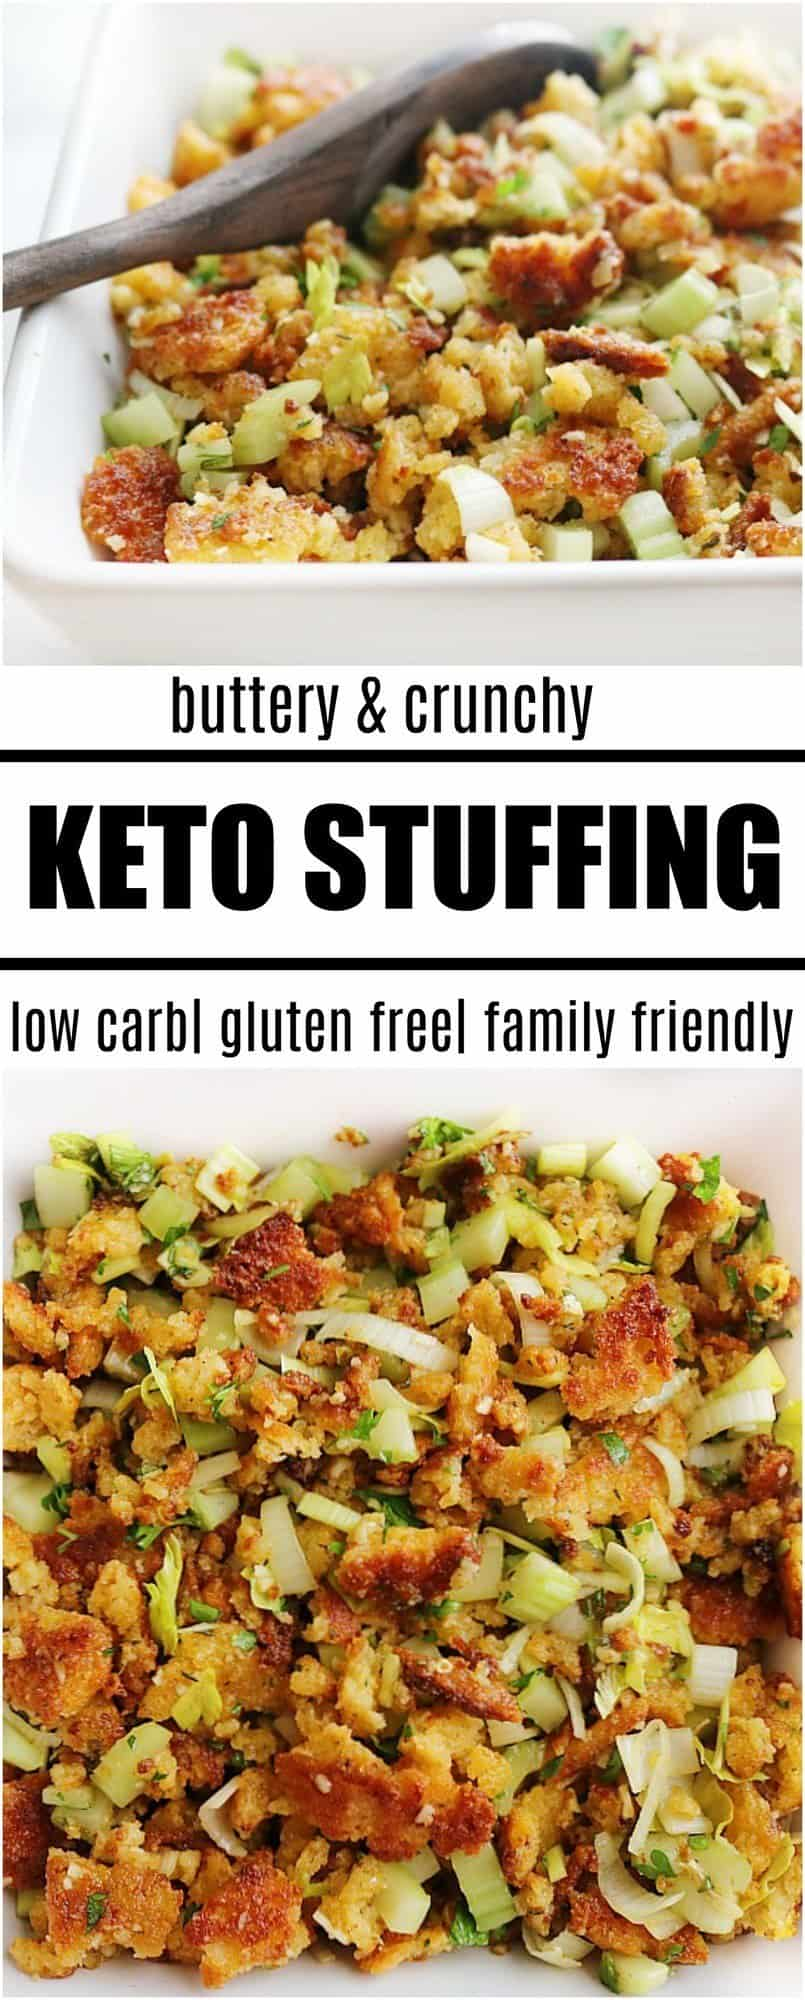 keto stuffing recipe